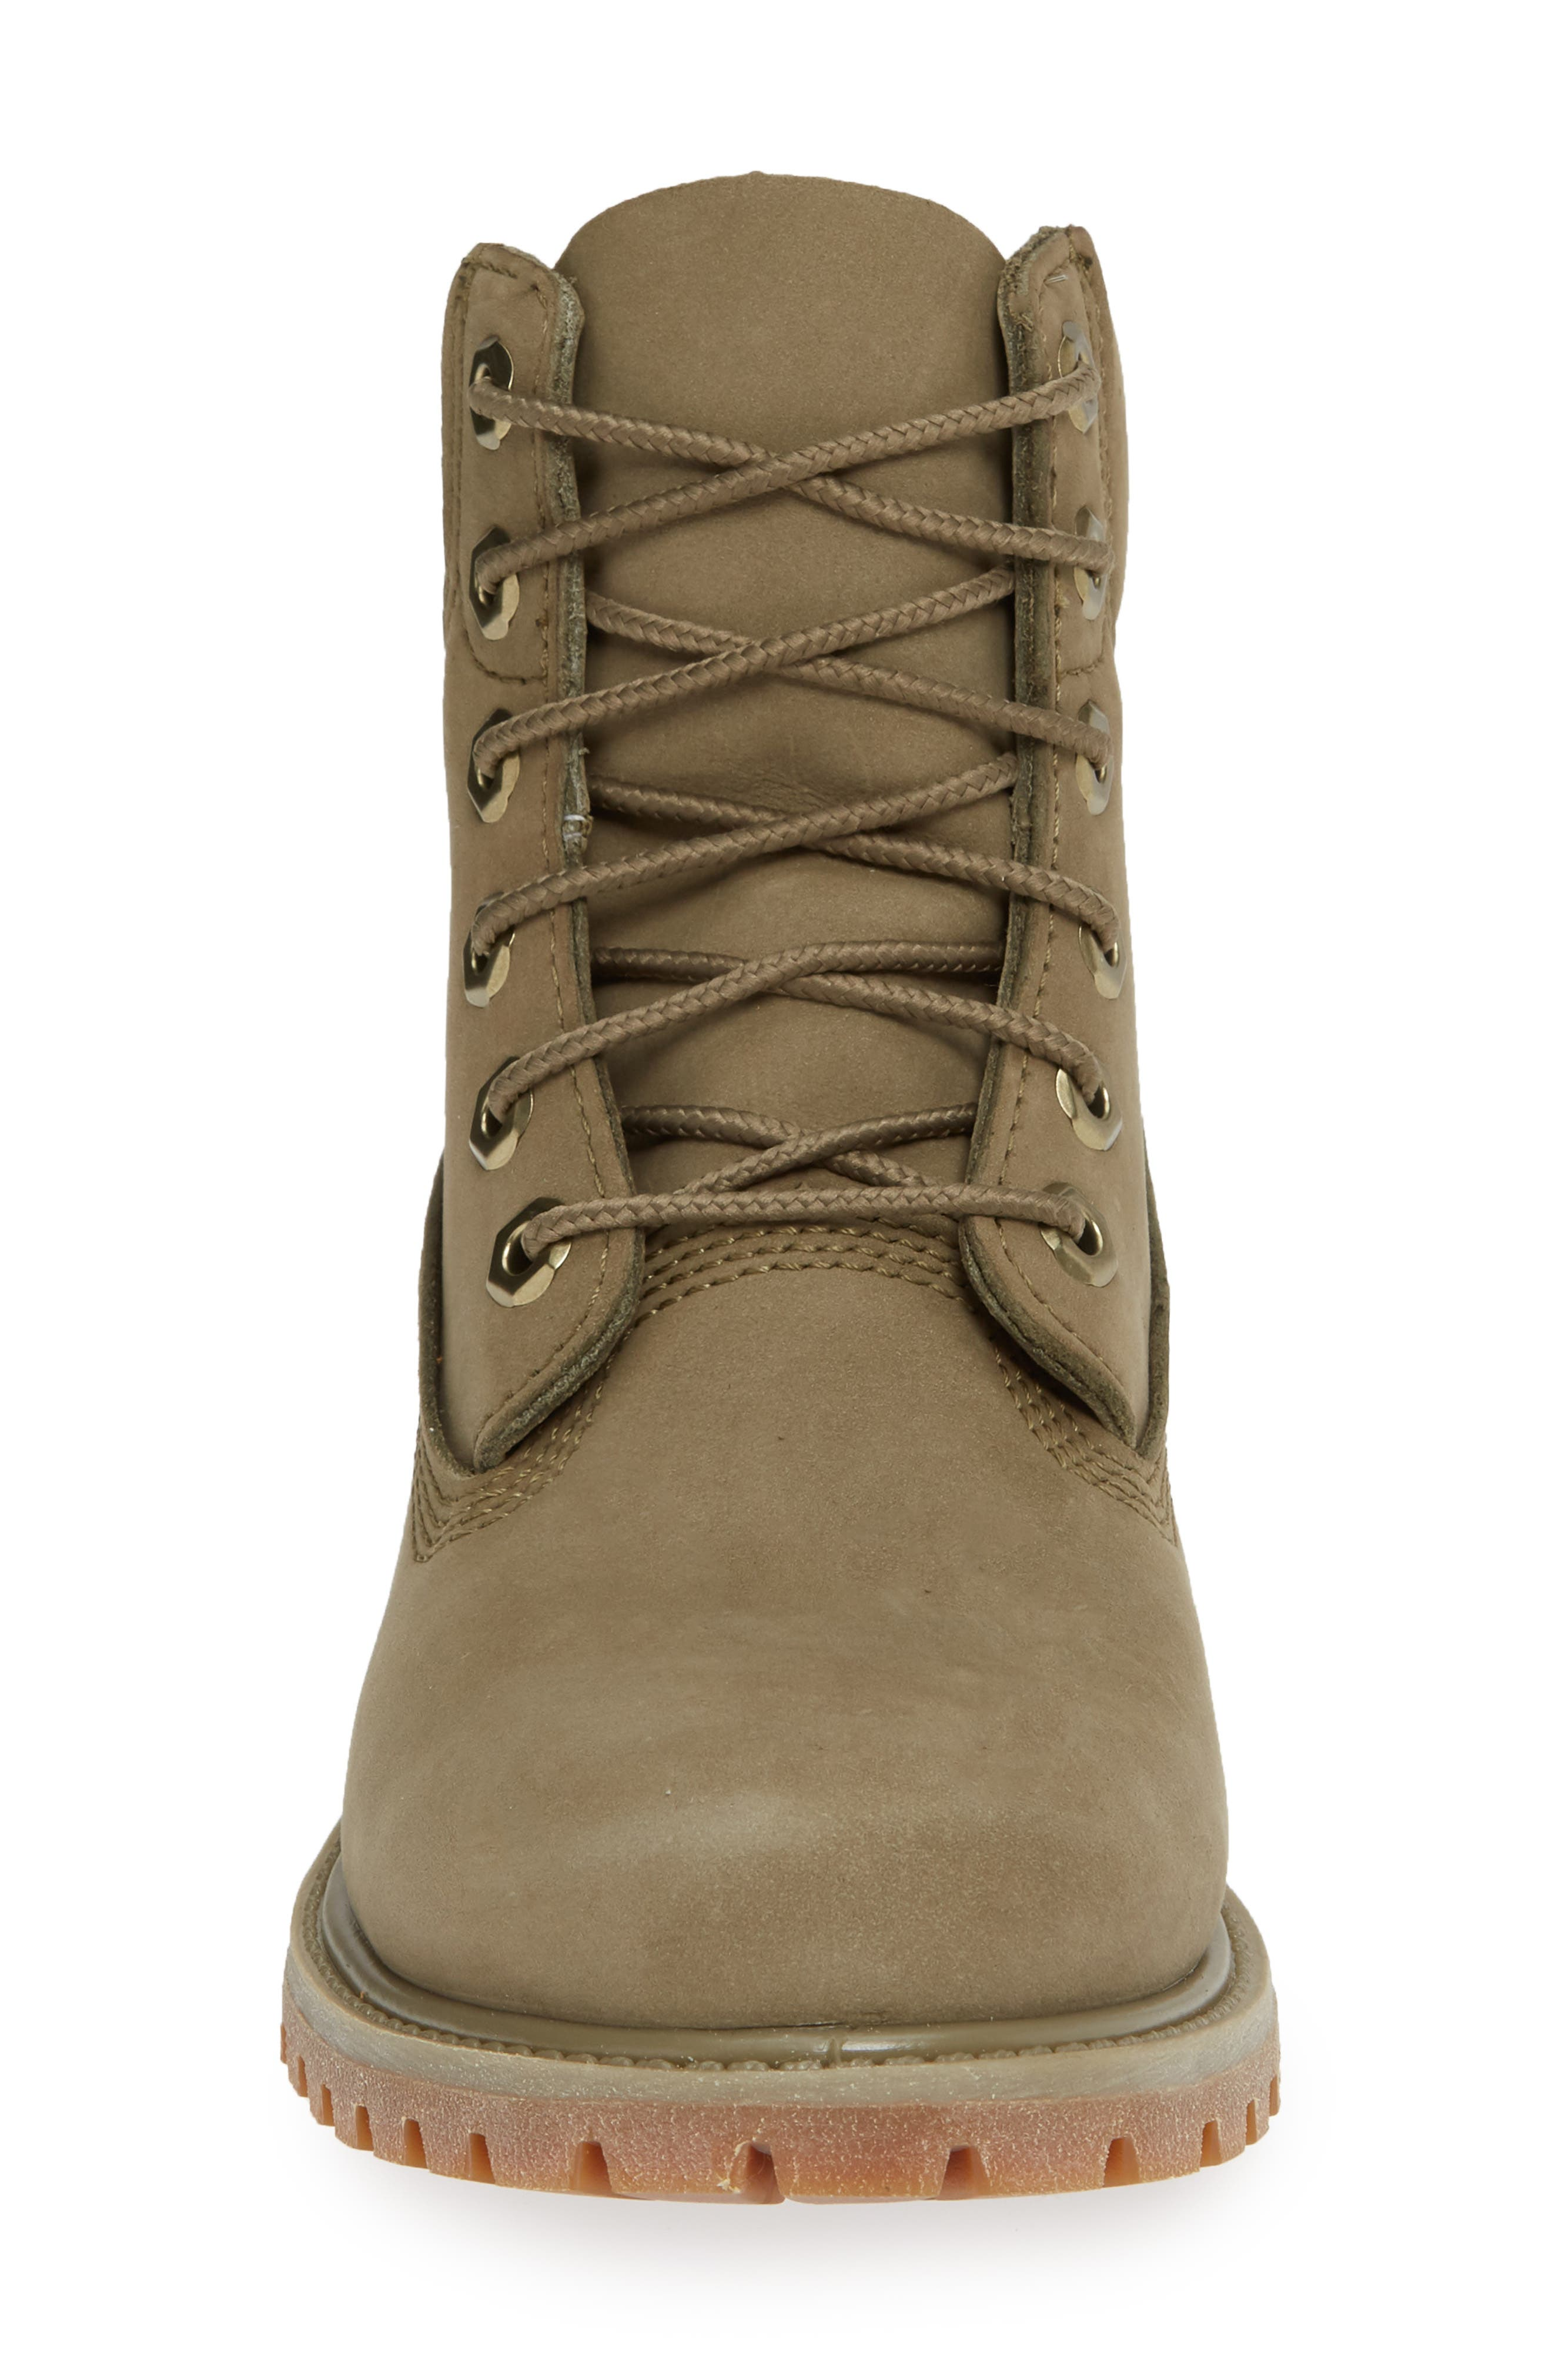 '6 Inch Premium' Waterproof Boot,                             Alternate thumbnail 4, color,                             COVERT GREEN LEATHER